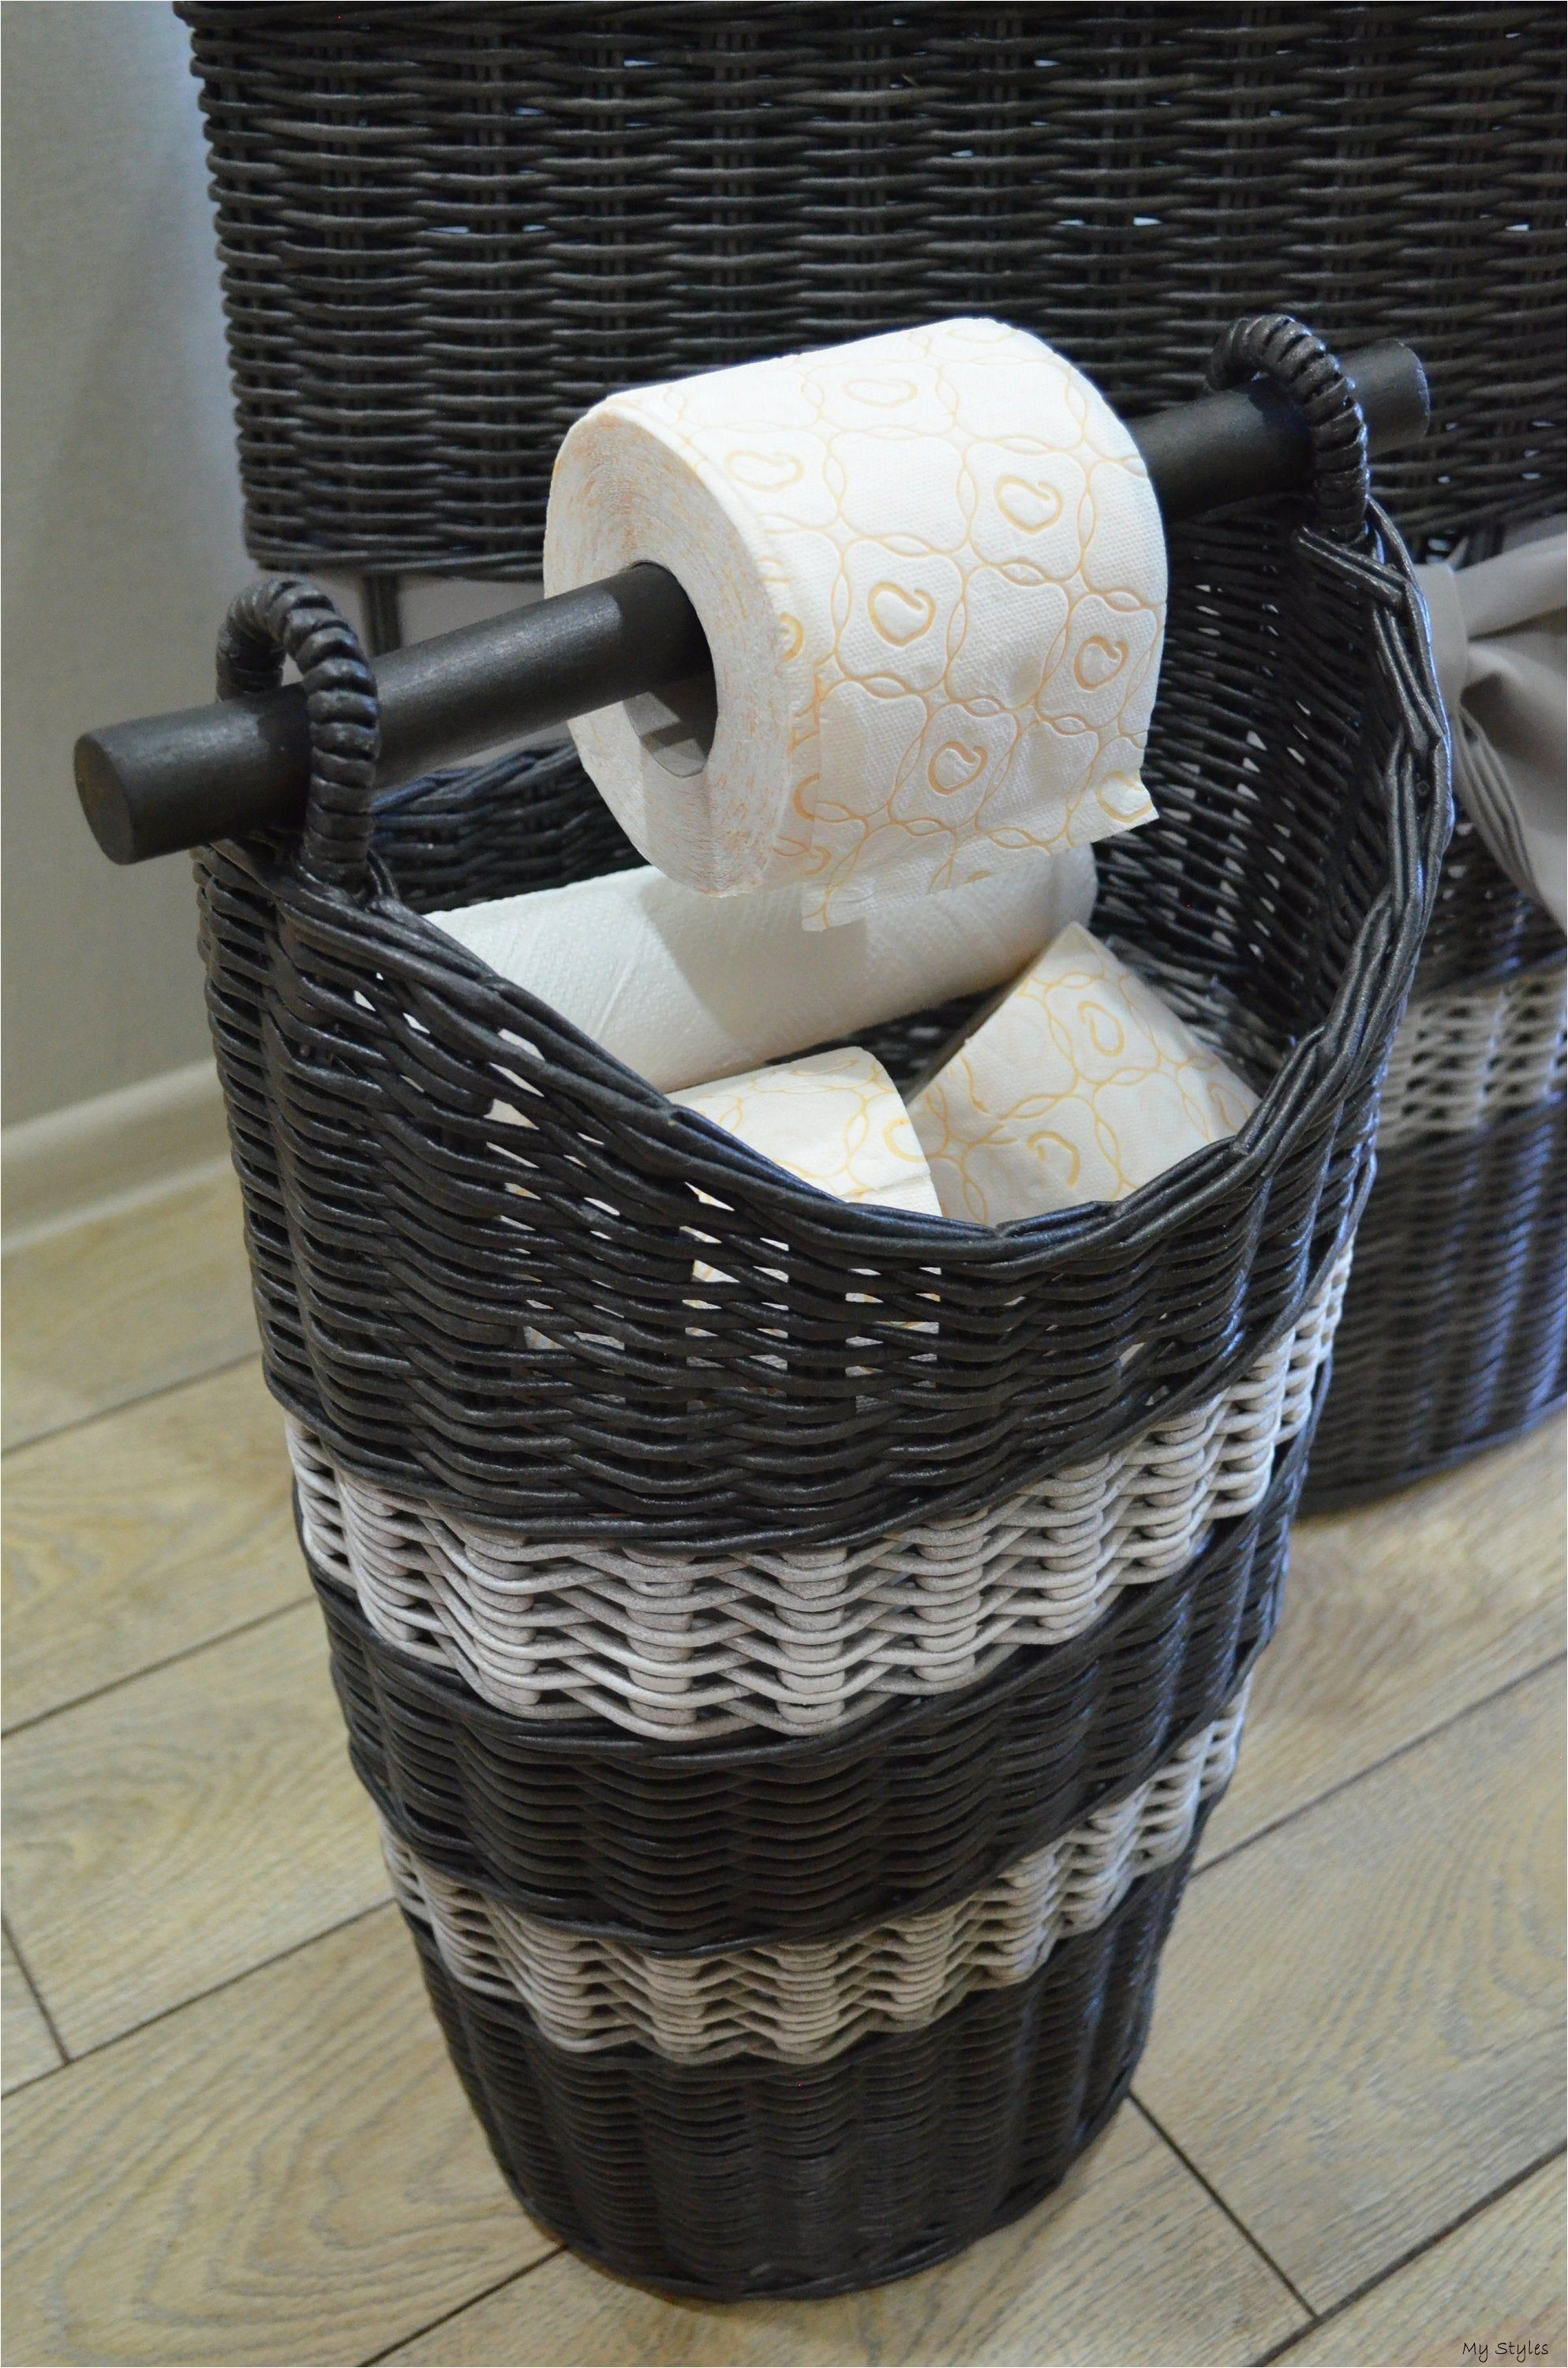 Storage Toilet Paper Toilet Paper Basket Spare Roll Holder Toilet Paper Basket With Handle Wicker Bathroom B In 2020 Bathroom Baskets Toilet Paper Toilet Paper Holder